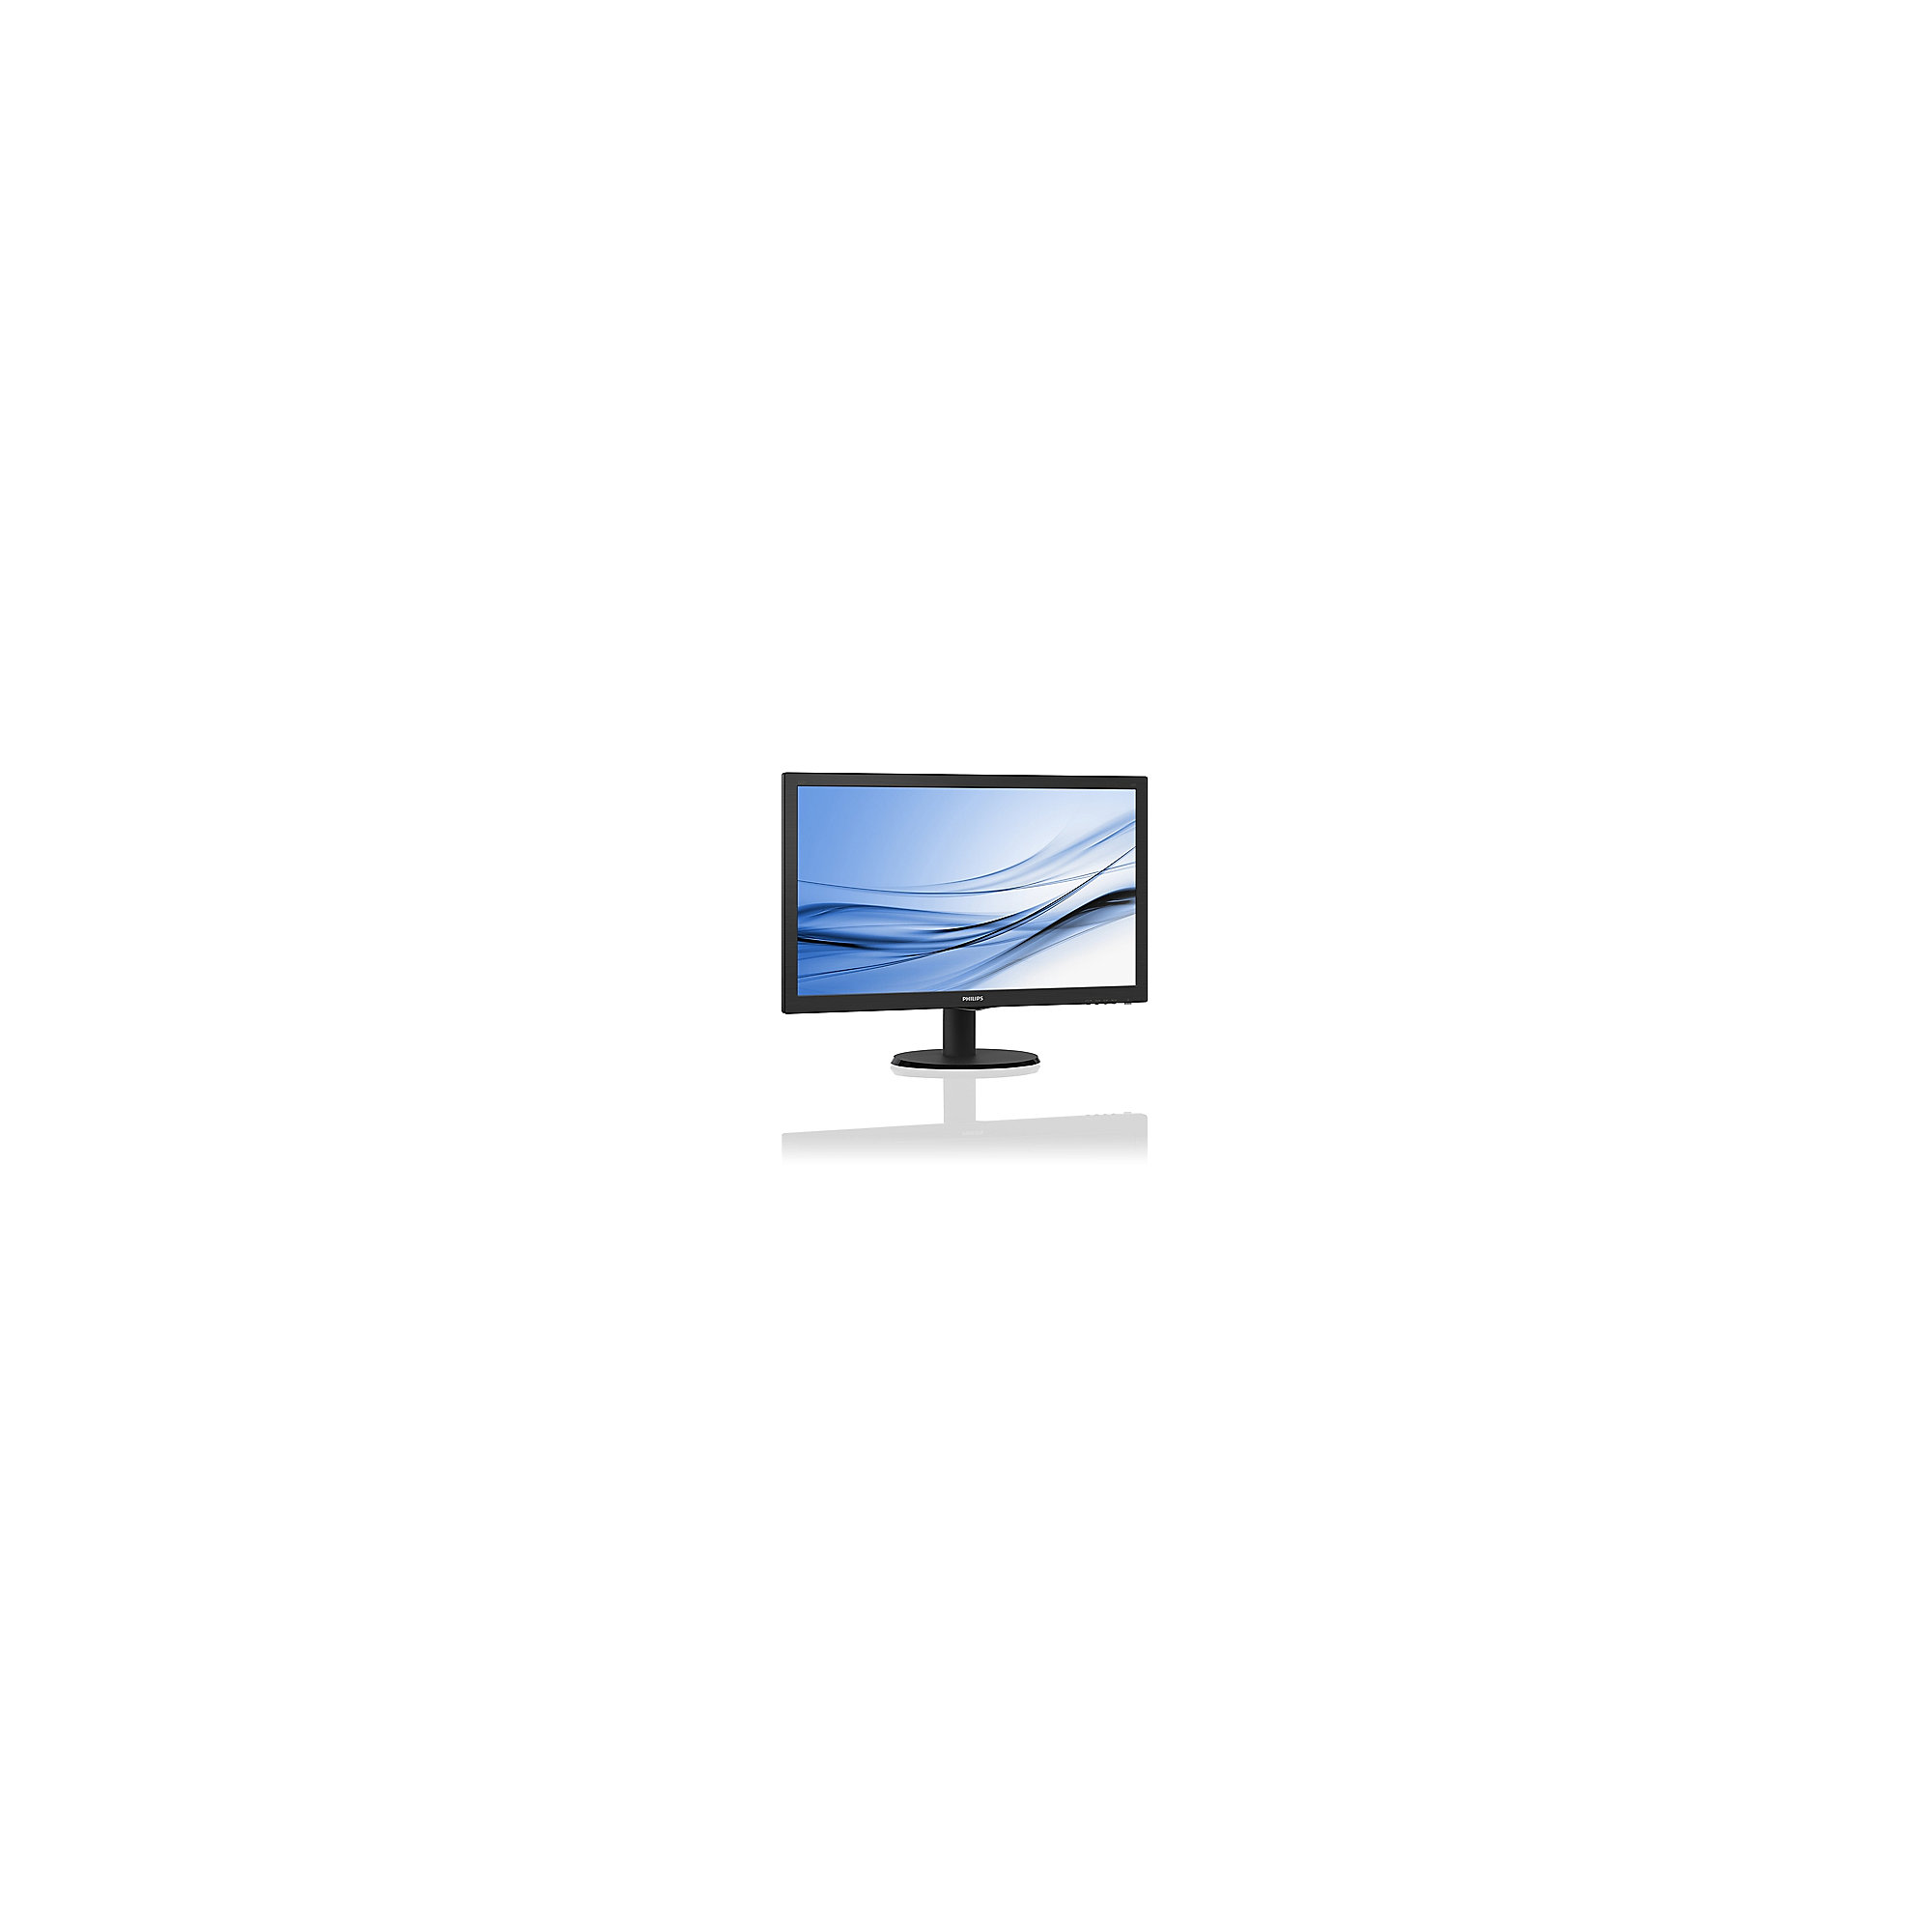 "Philips 223V5LSB/00 54,6 cm (22"") 16:9 Full HD Monitor VGA/DVI 5 ms 10Mio:1"